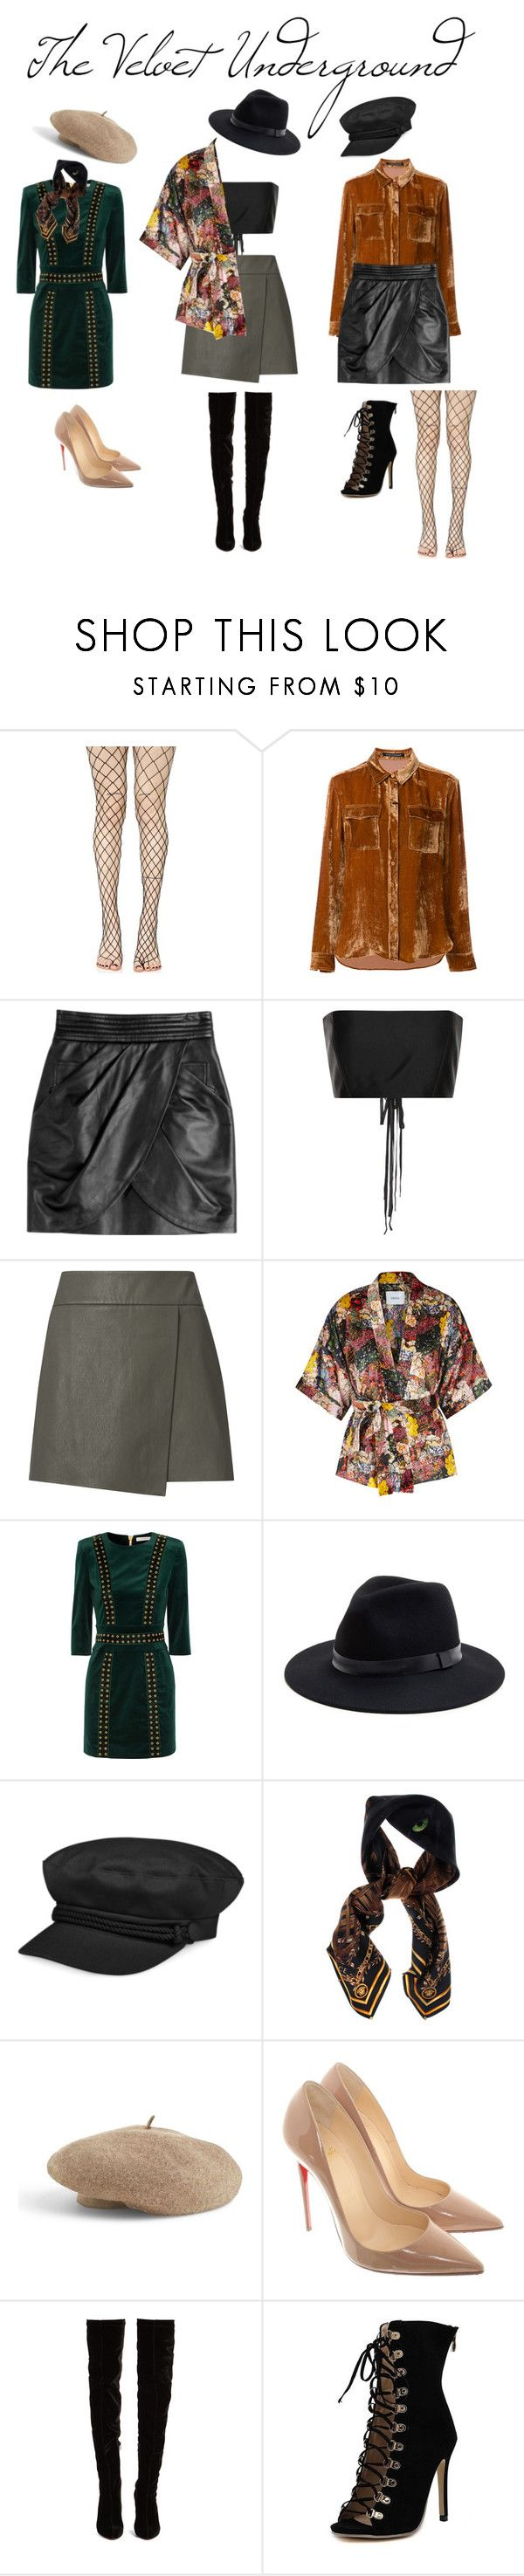 """""""The Velvet Underground"""" by elisabethjean on Polyvore featuring Leg Avenue, LUISA CERANO, Balmain, The Row, Exclusive for Intermix, Erdem, Pierre Balmain, Sole Society, Nine West and Versace"""